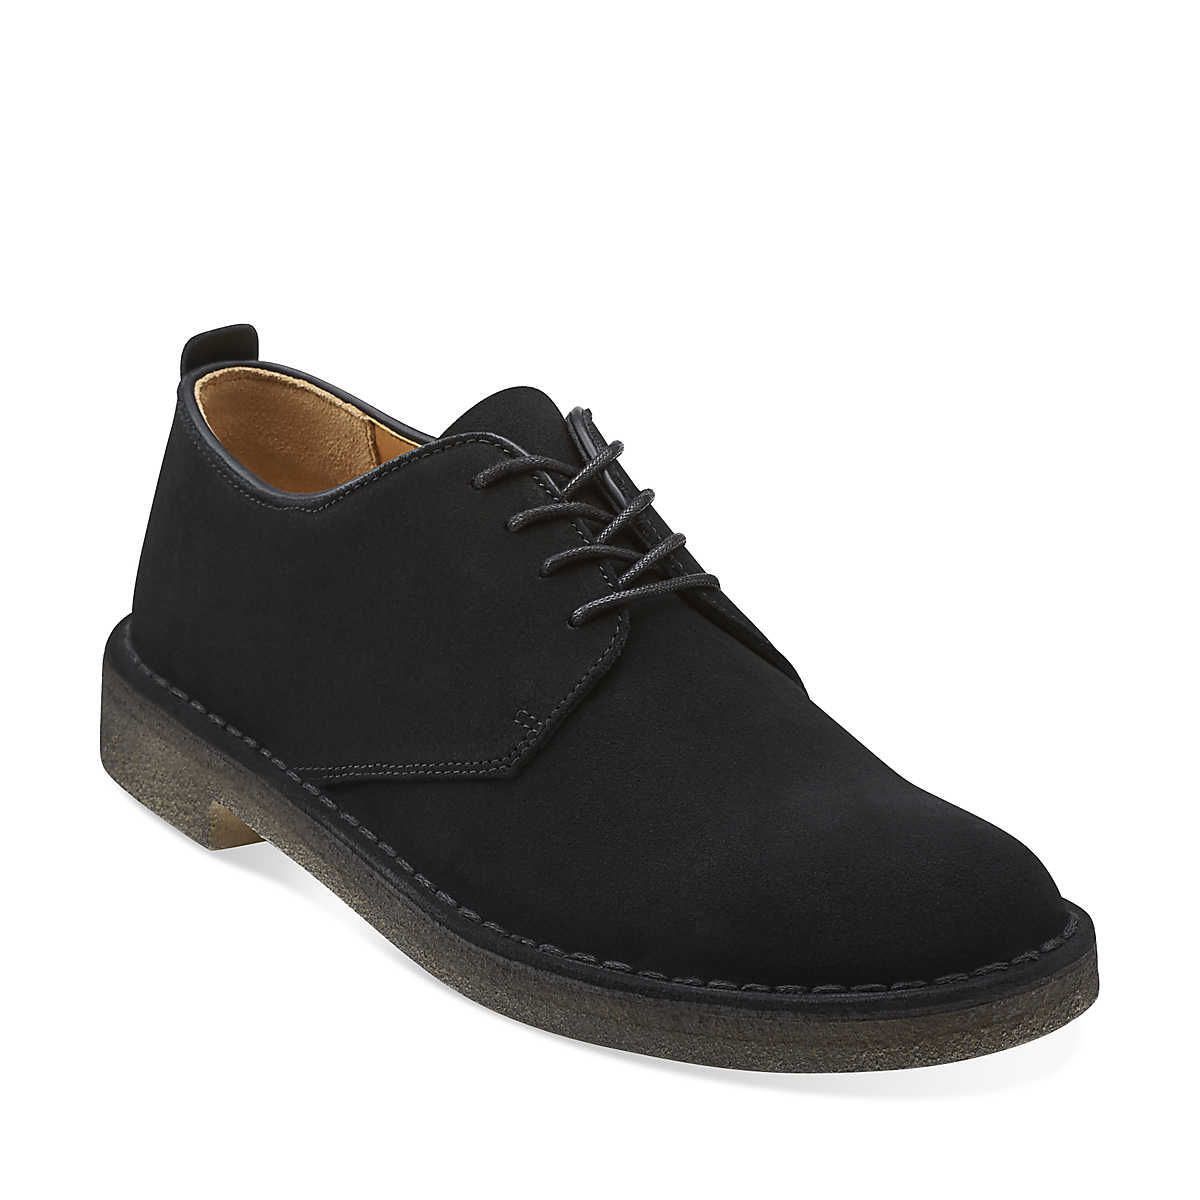 Clarks Desert London in Black Suede | Versatile Work Shoes for Men